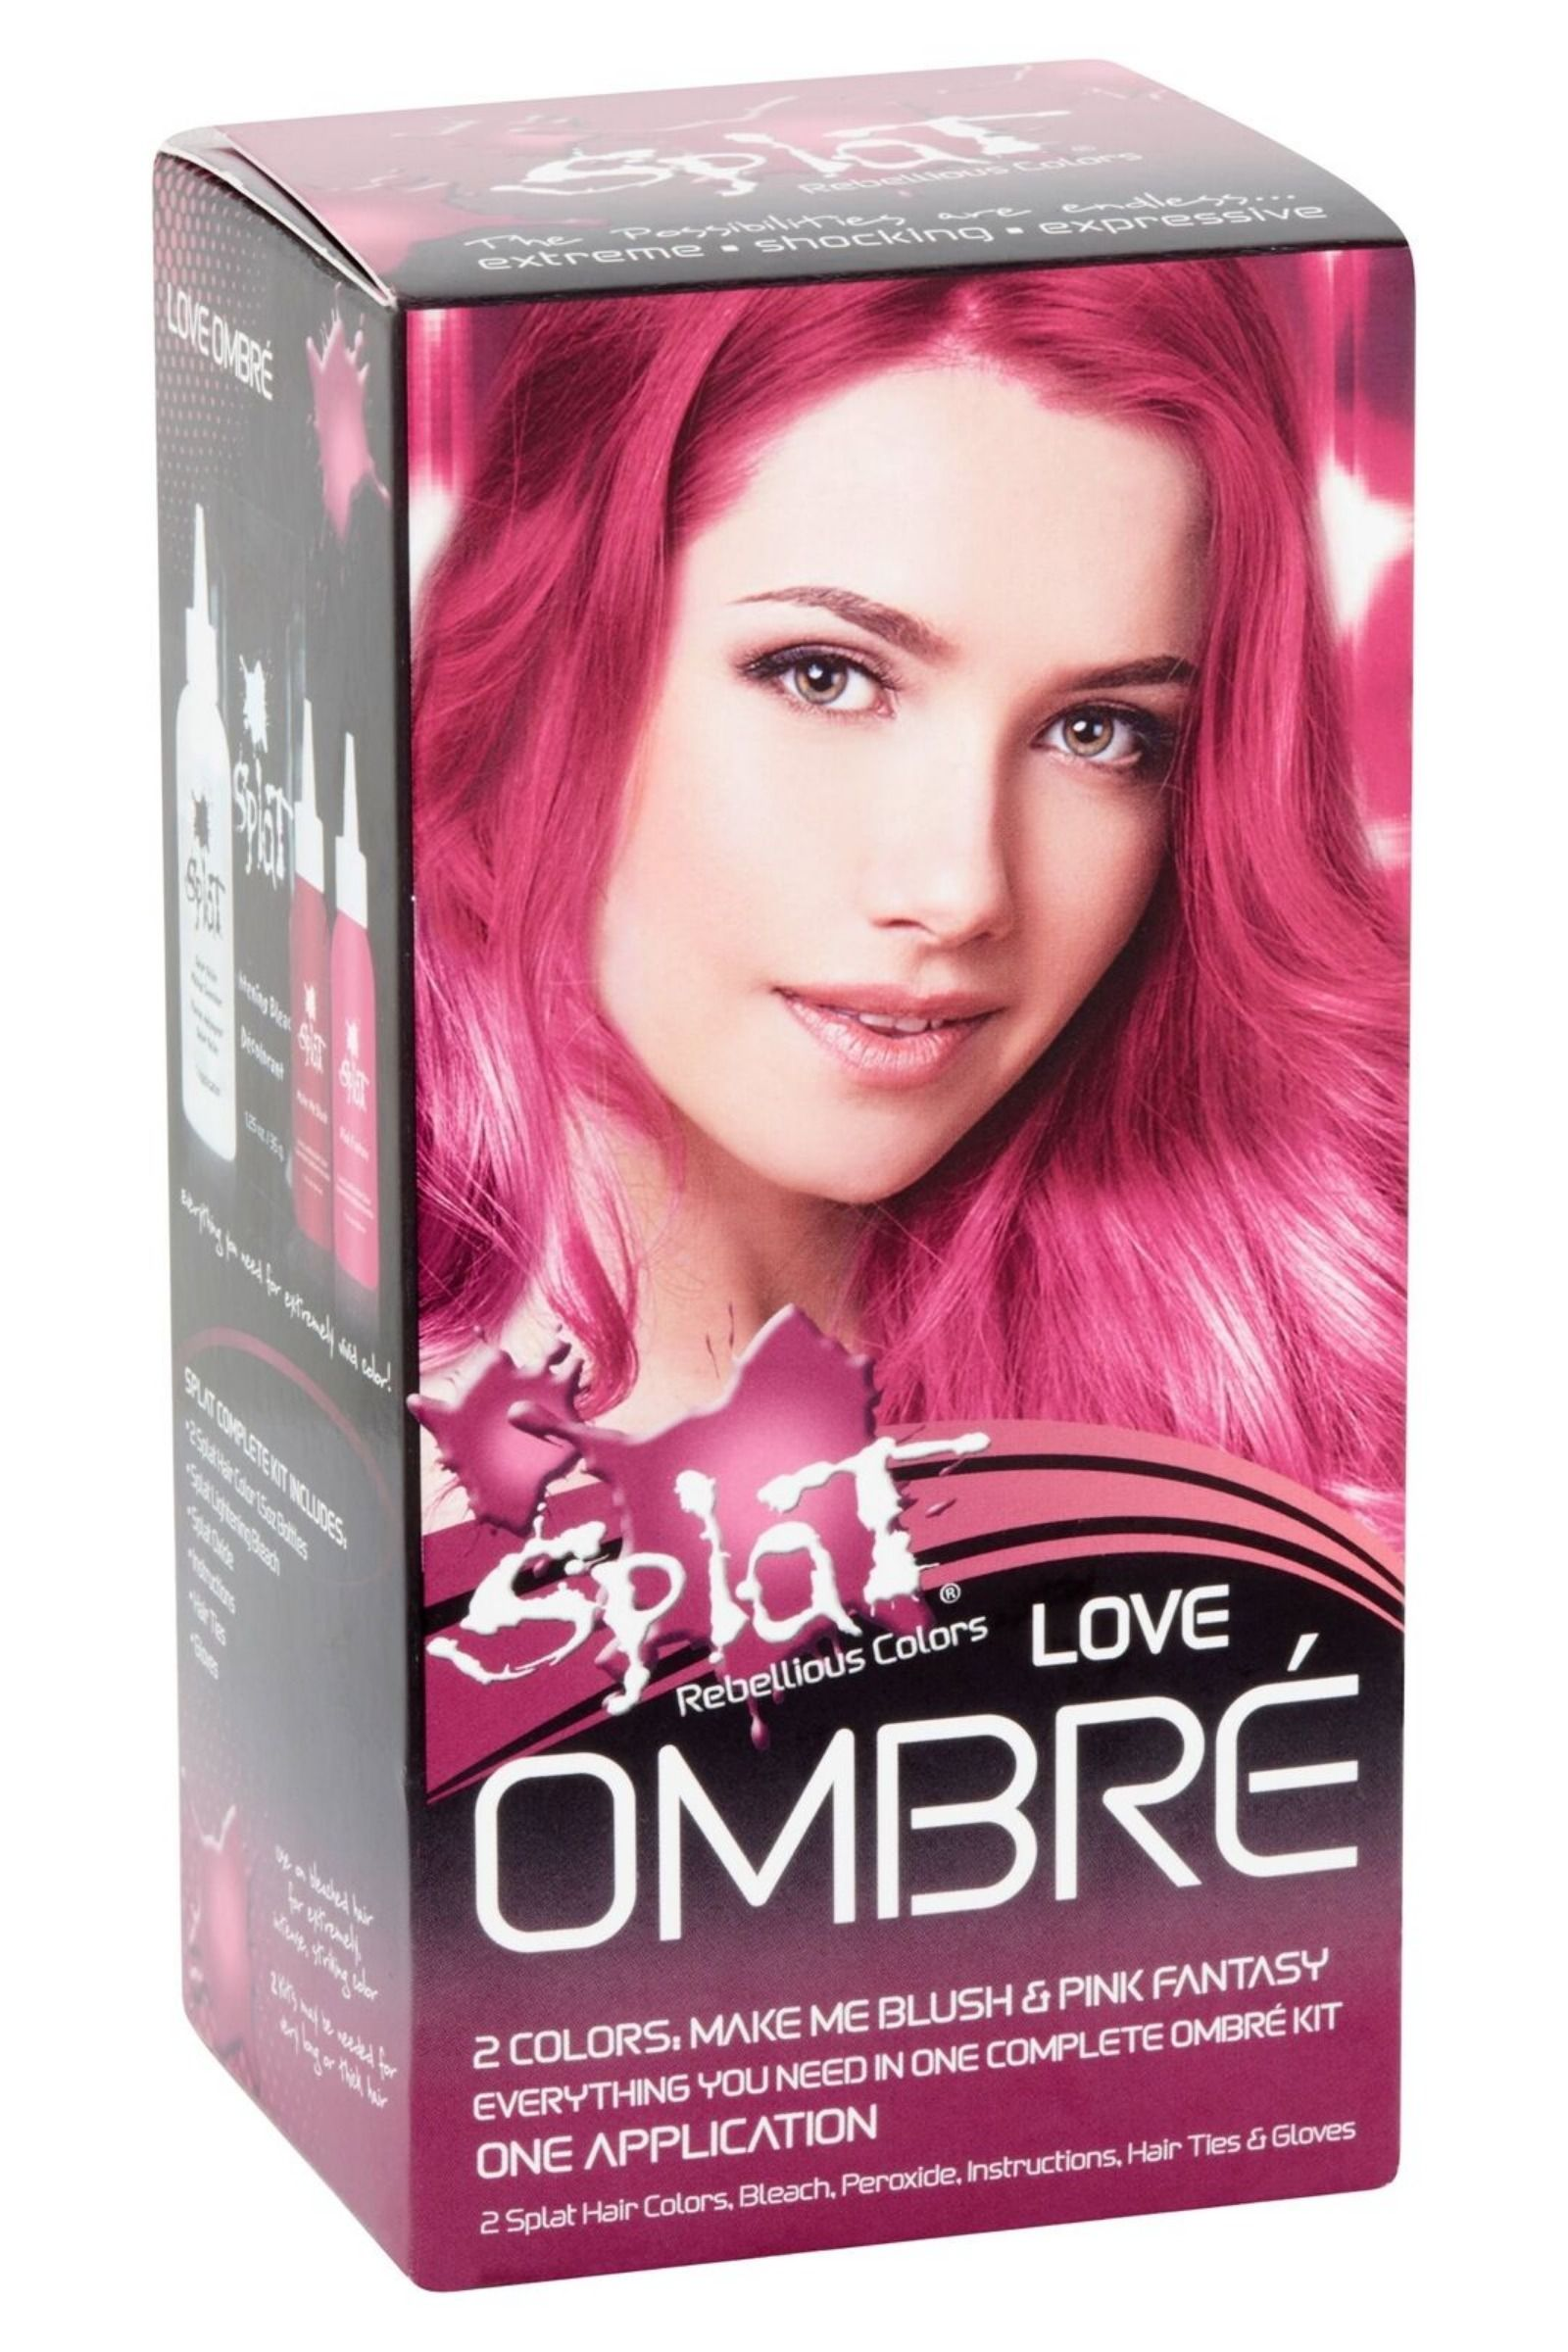 Splat Rebellious Colors Semi Permanent Complete Kit Ombre Hair Dye Ebay In 2020 Splat Hair Dye Semi Permanent Hair Dye Splat Hair Color